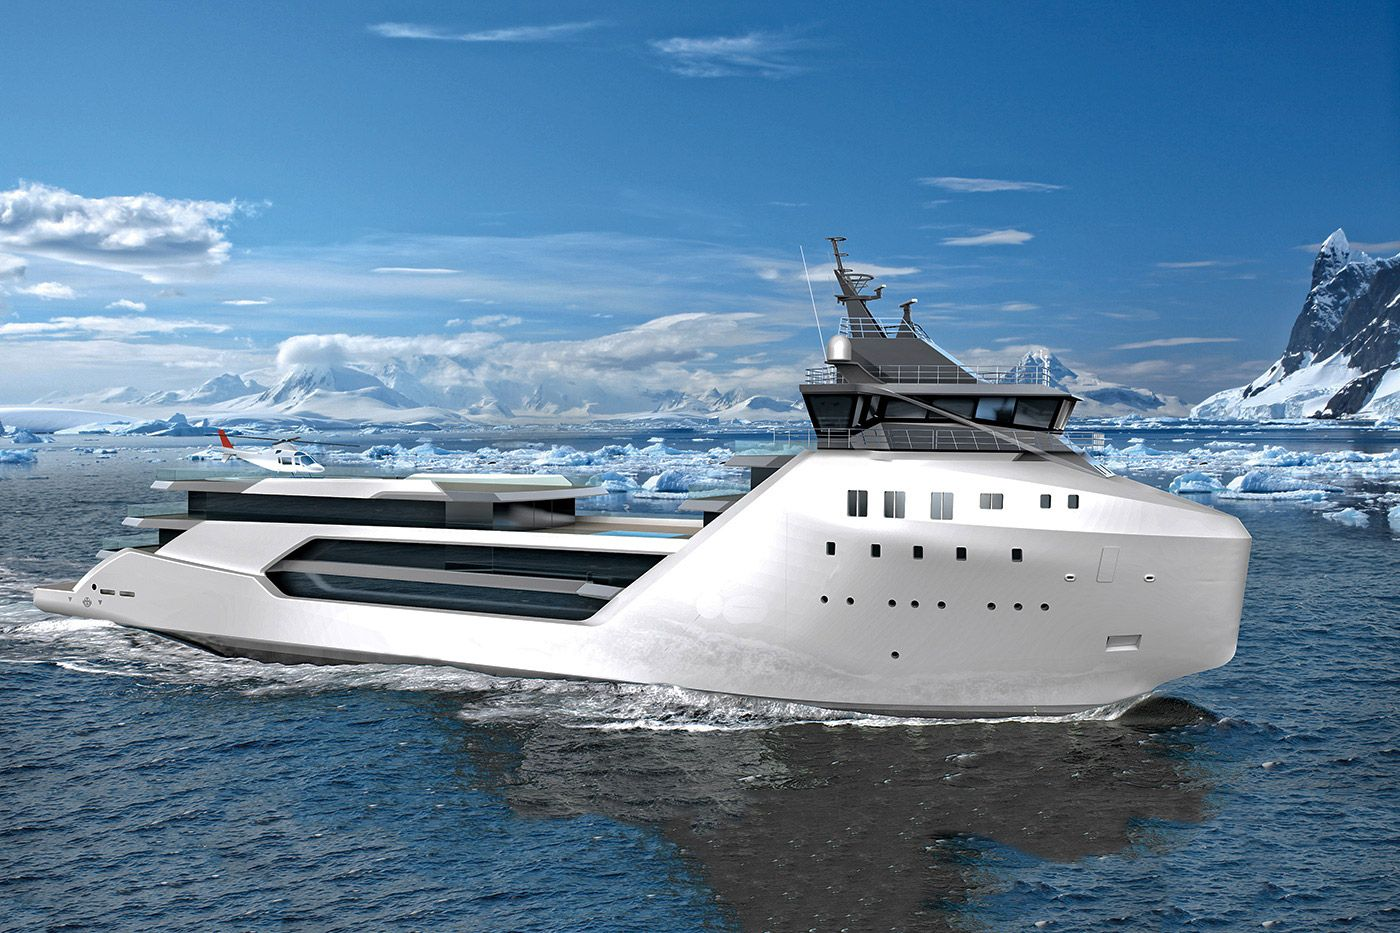 Most Yachts Are Built To Sail The Waters Of The Caribbean Or - Giga yacht takes luxury oil tanker sized extreme